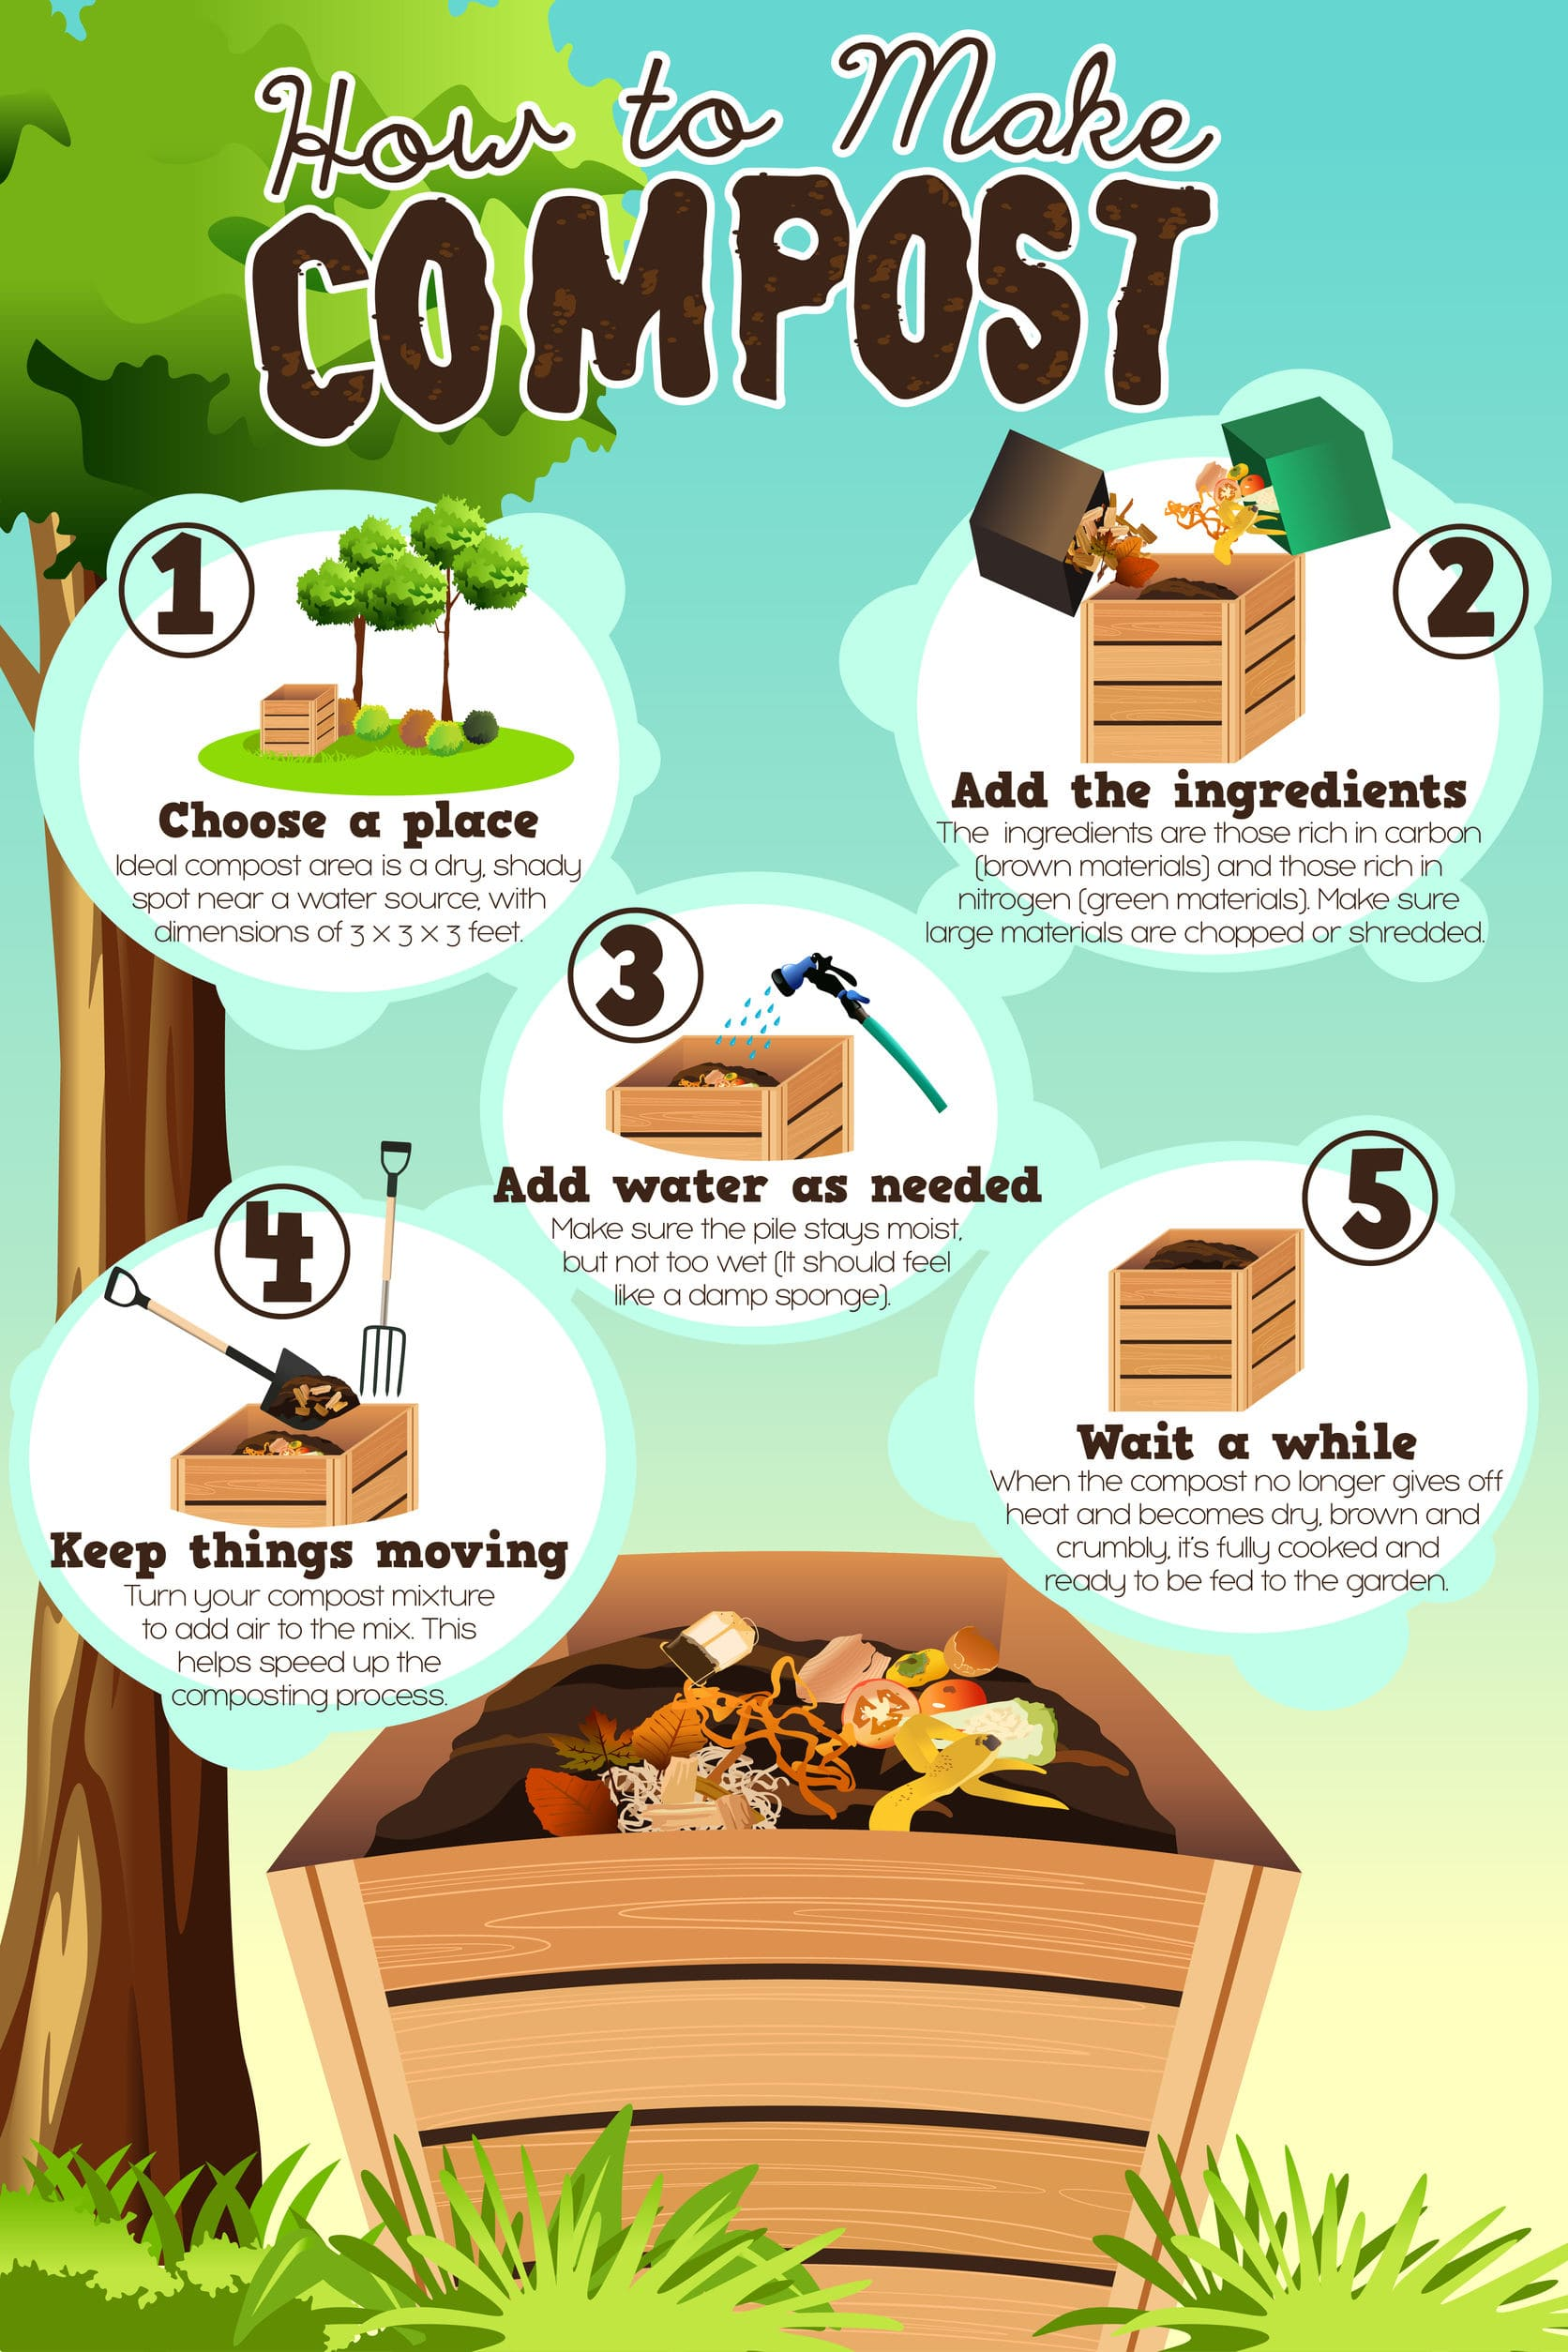 How to Compost Leaves for Green Garden and Vegetable (1)